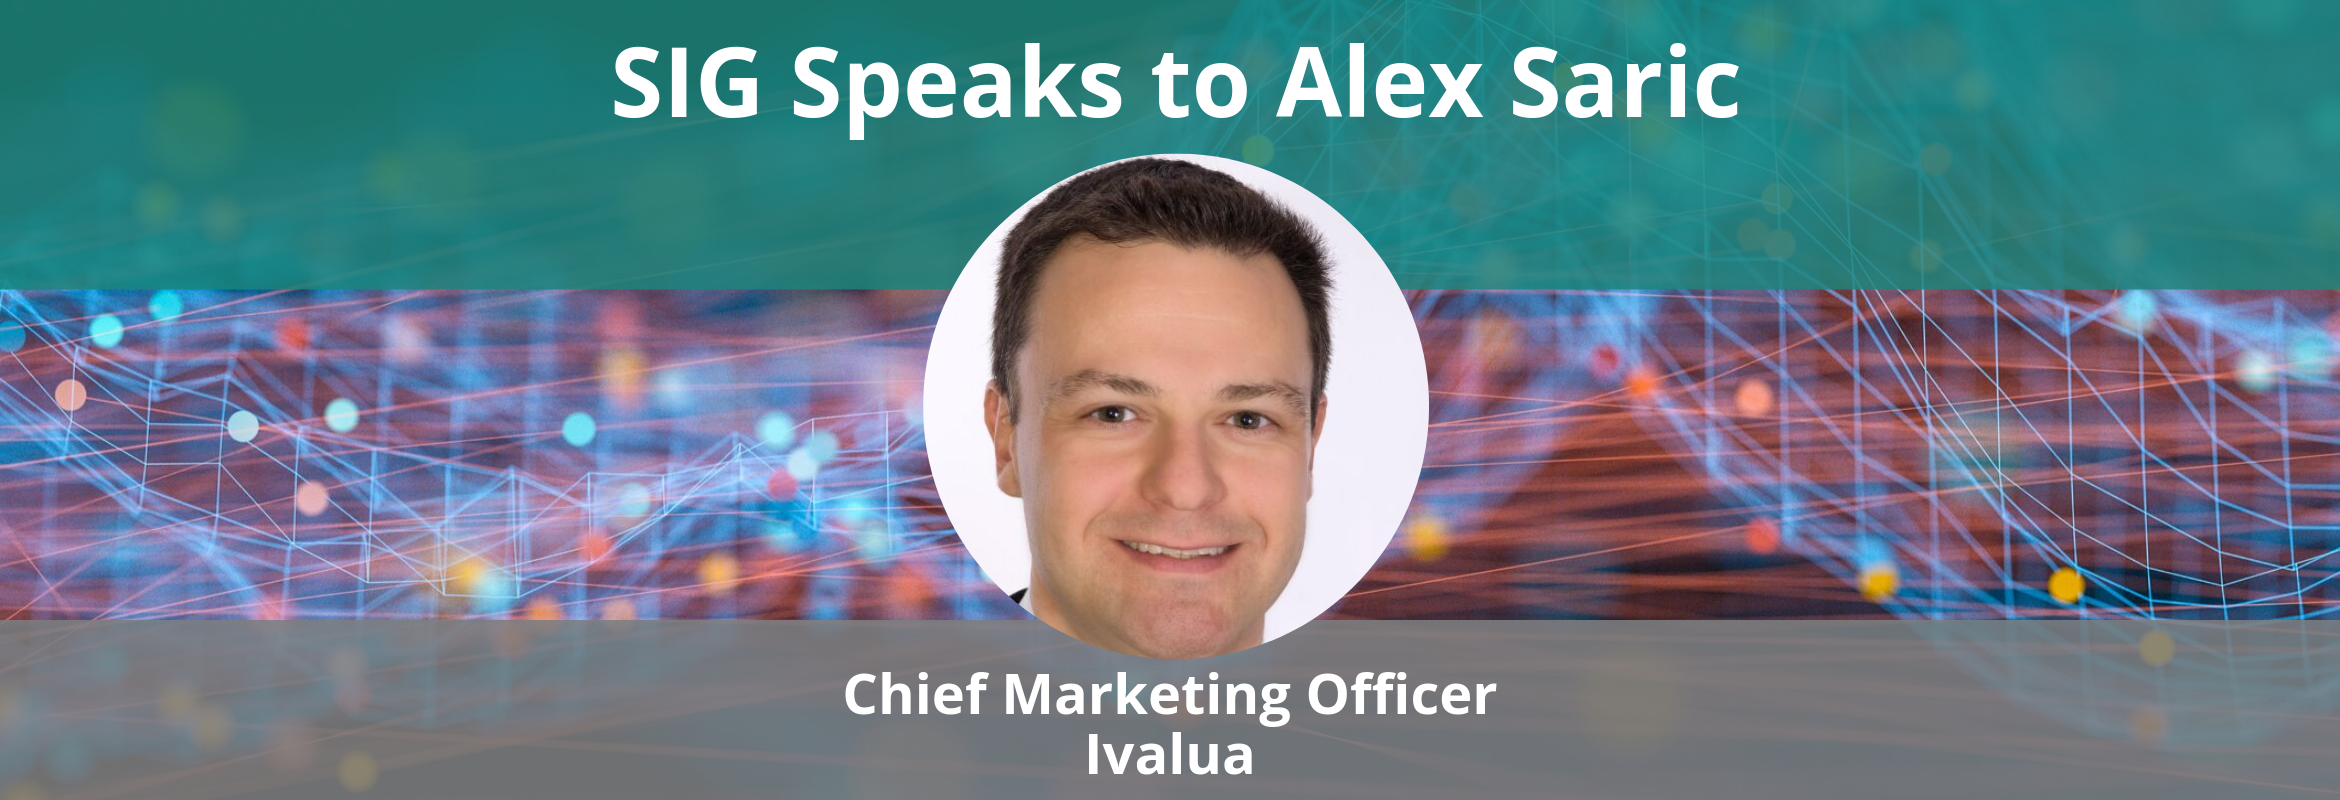 Alex Saric is the Chief Marketing Officer at Ivalua.